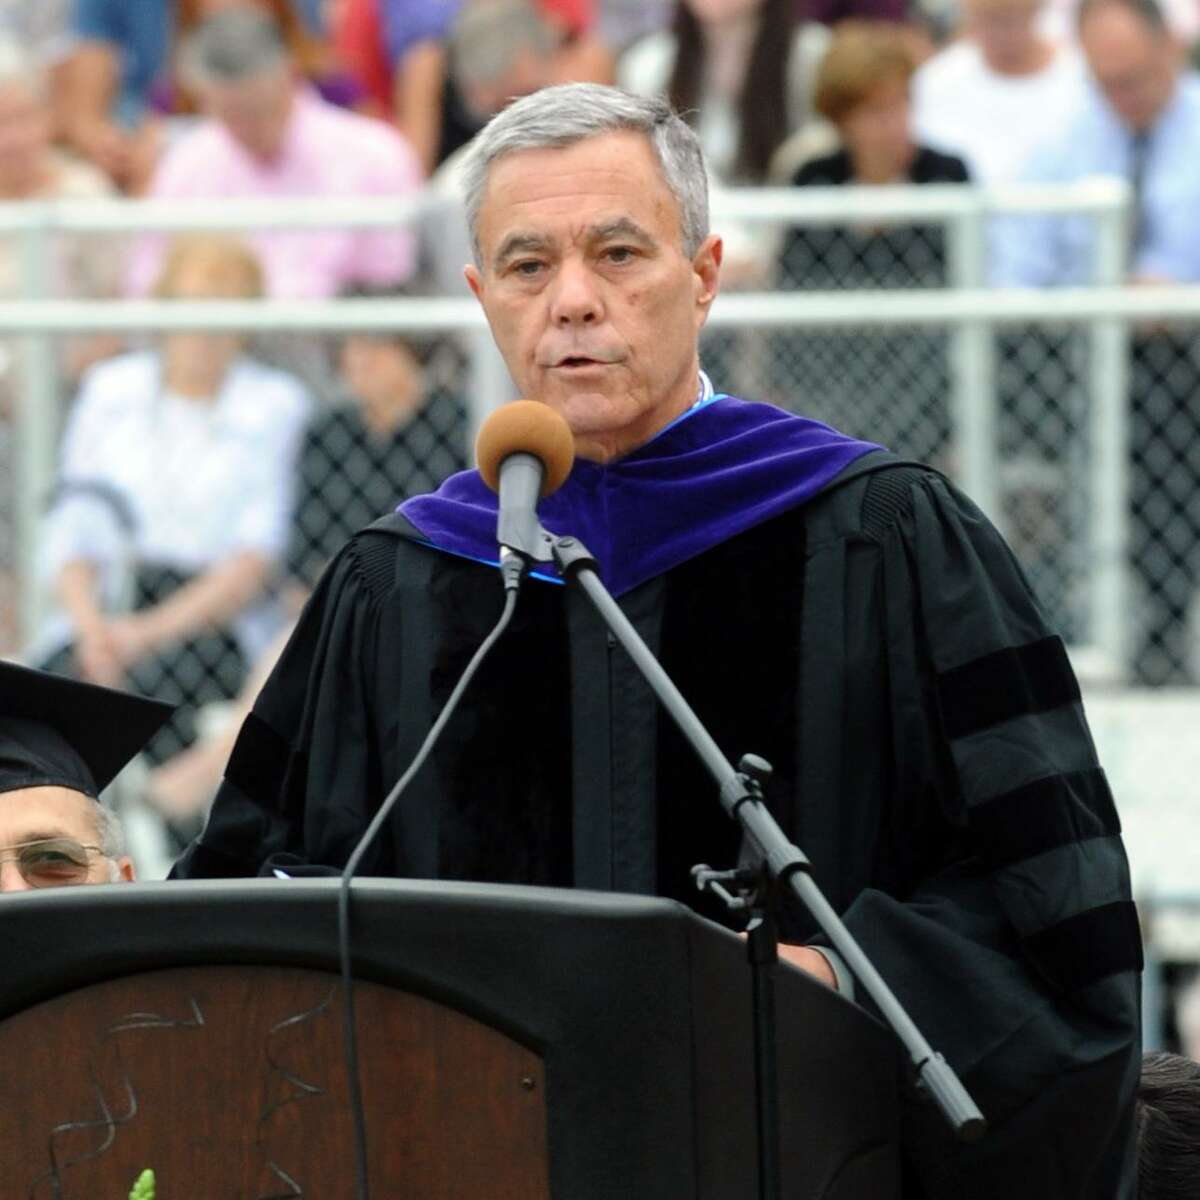 Stephen Wright, then Chairman of the Board of the Education, at the 2012 Trumbull High graduation. Wright pleaded guilty to driving under the influence and driving with a suspended license and was sentenced to 18 months, suspended after he serves 120 days in prison.